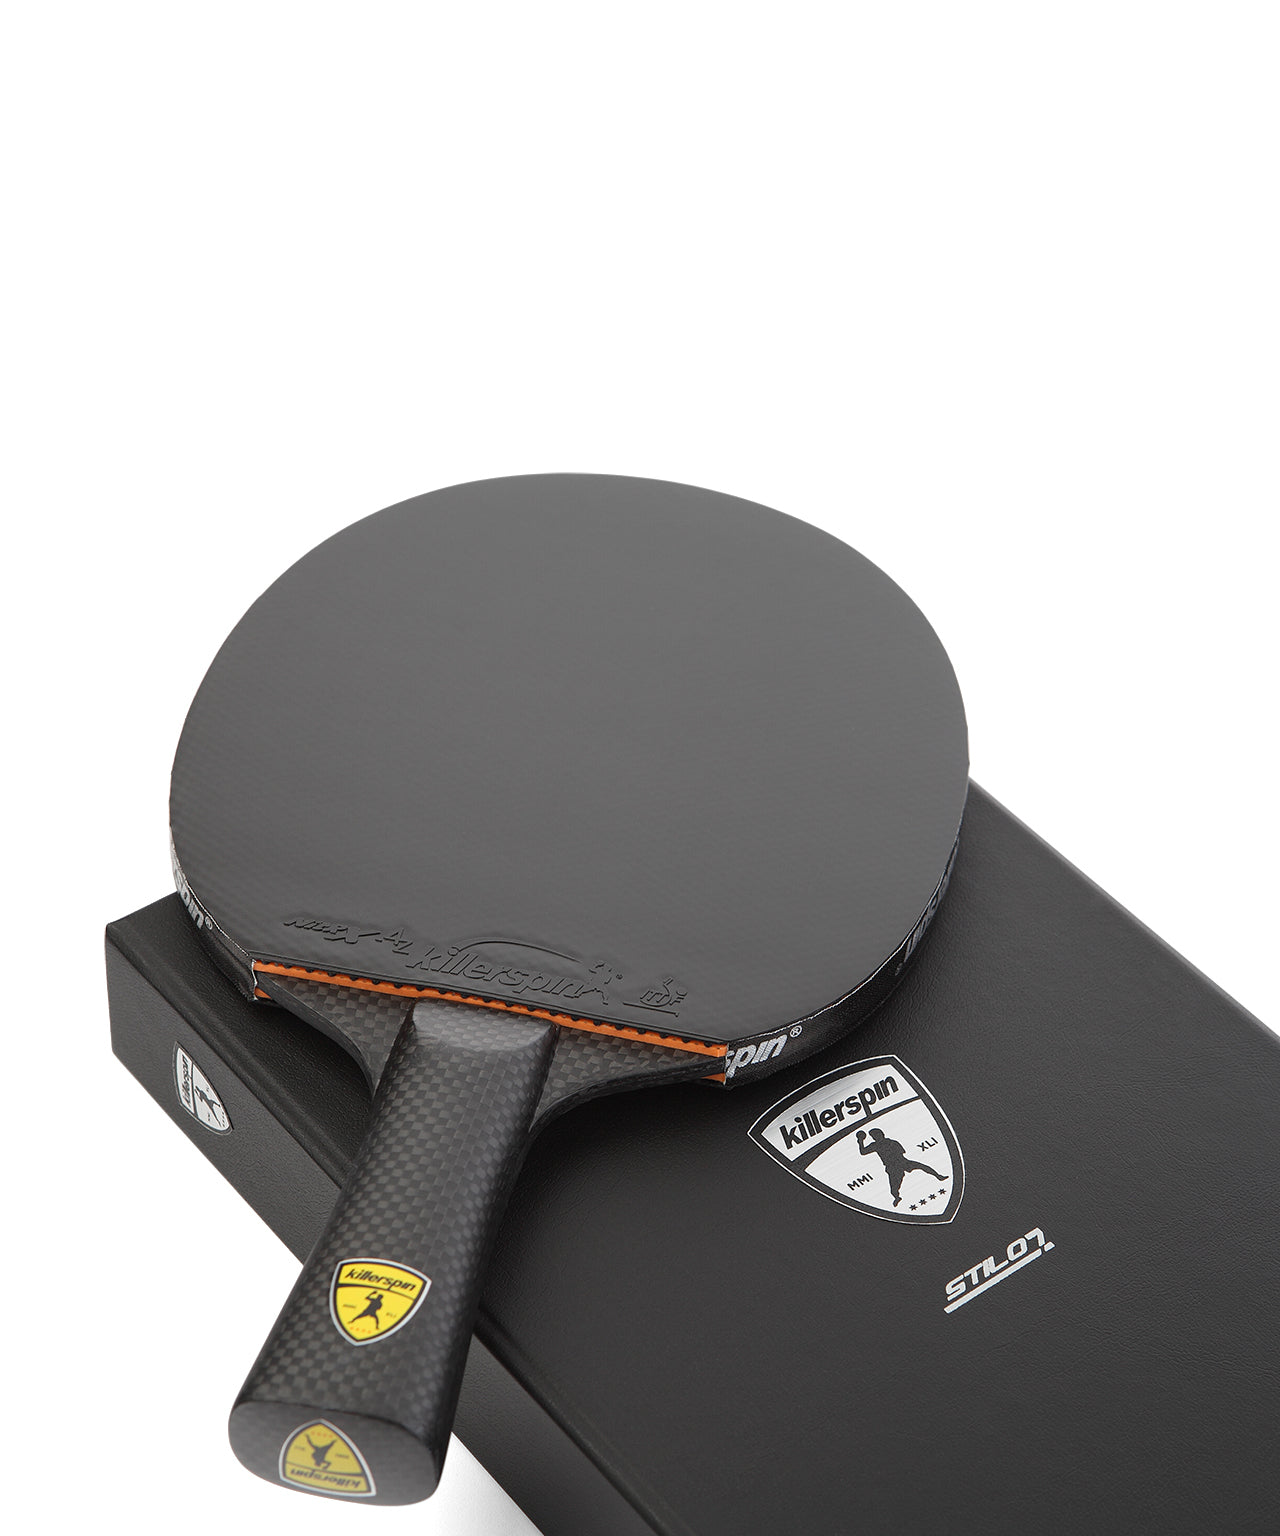 Killerspin SVR Ping Pong Paddle Stilo7 SVR - Handle